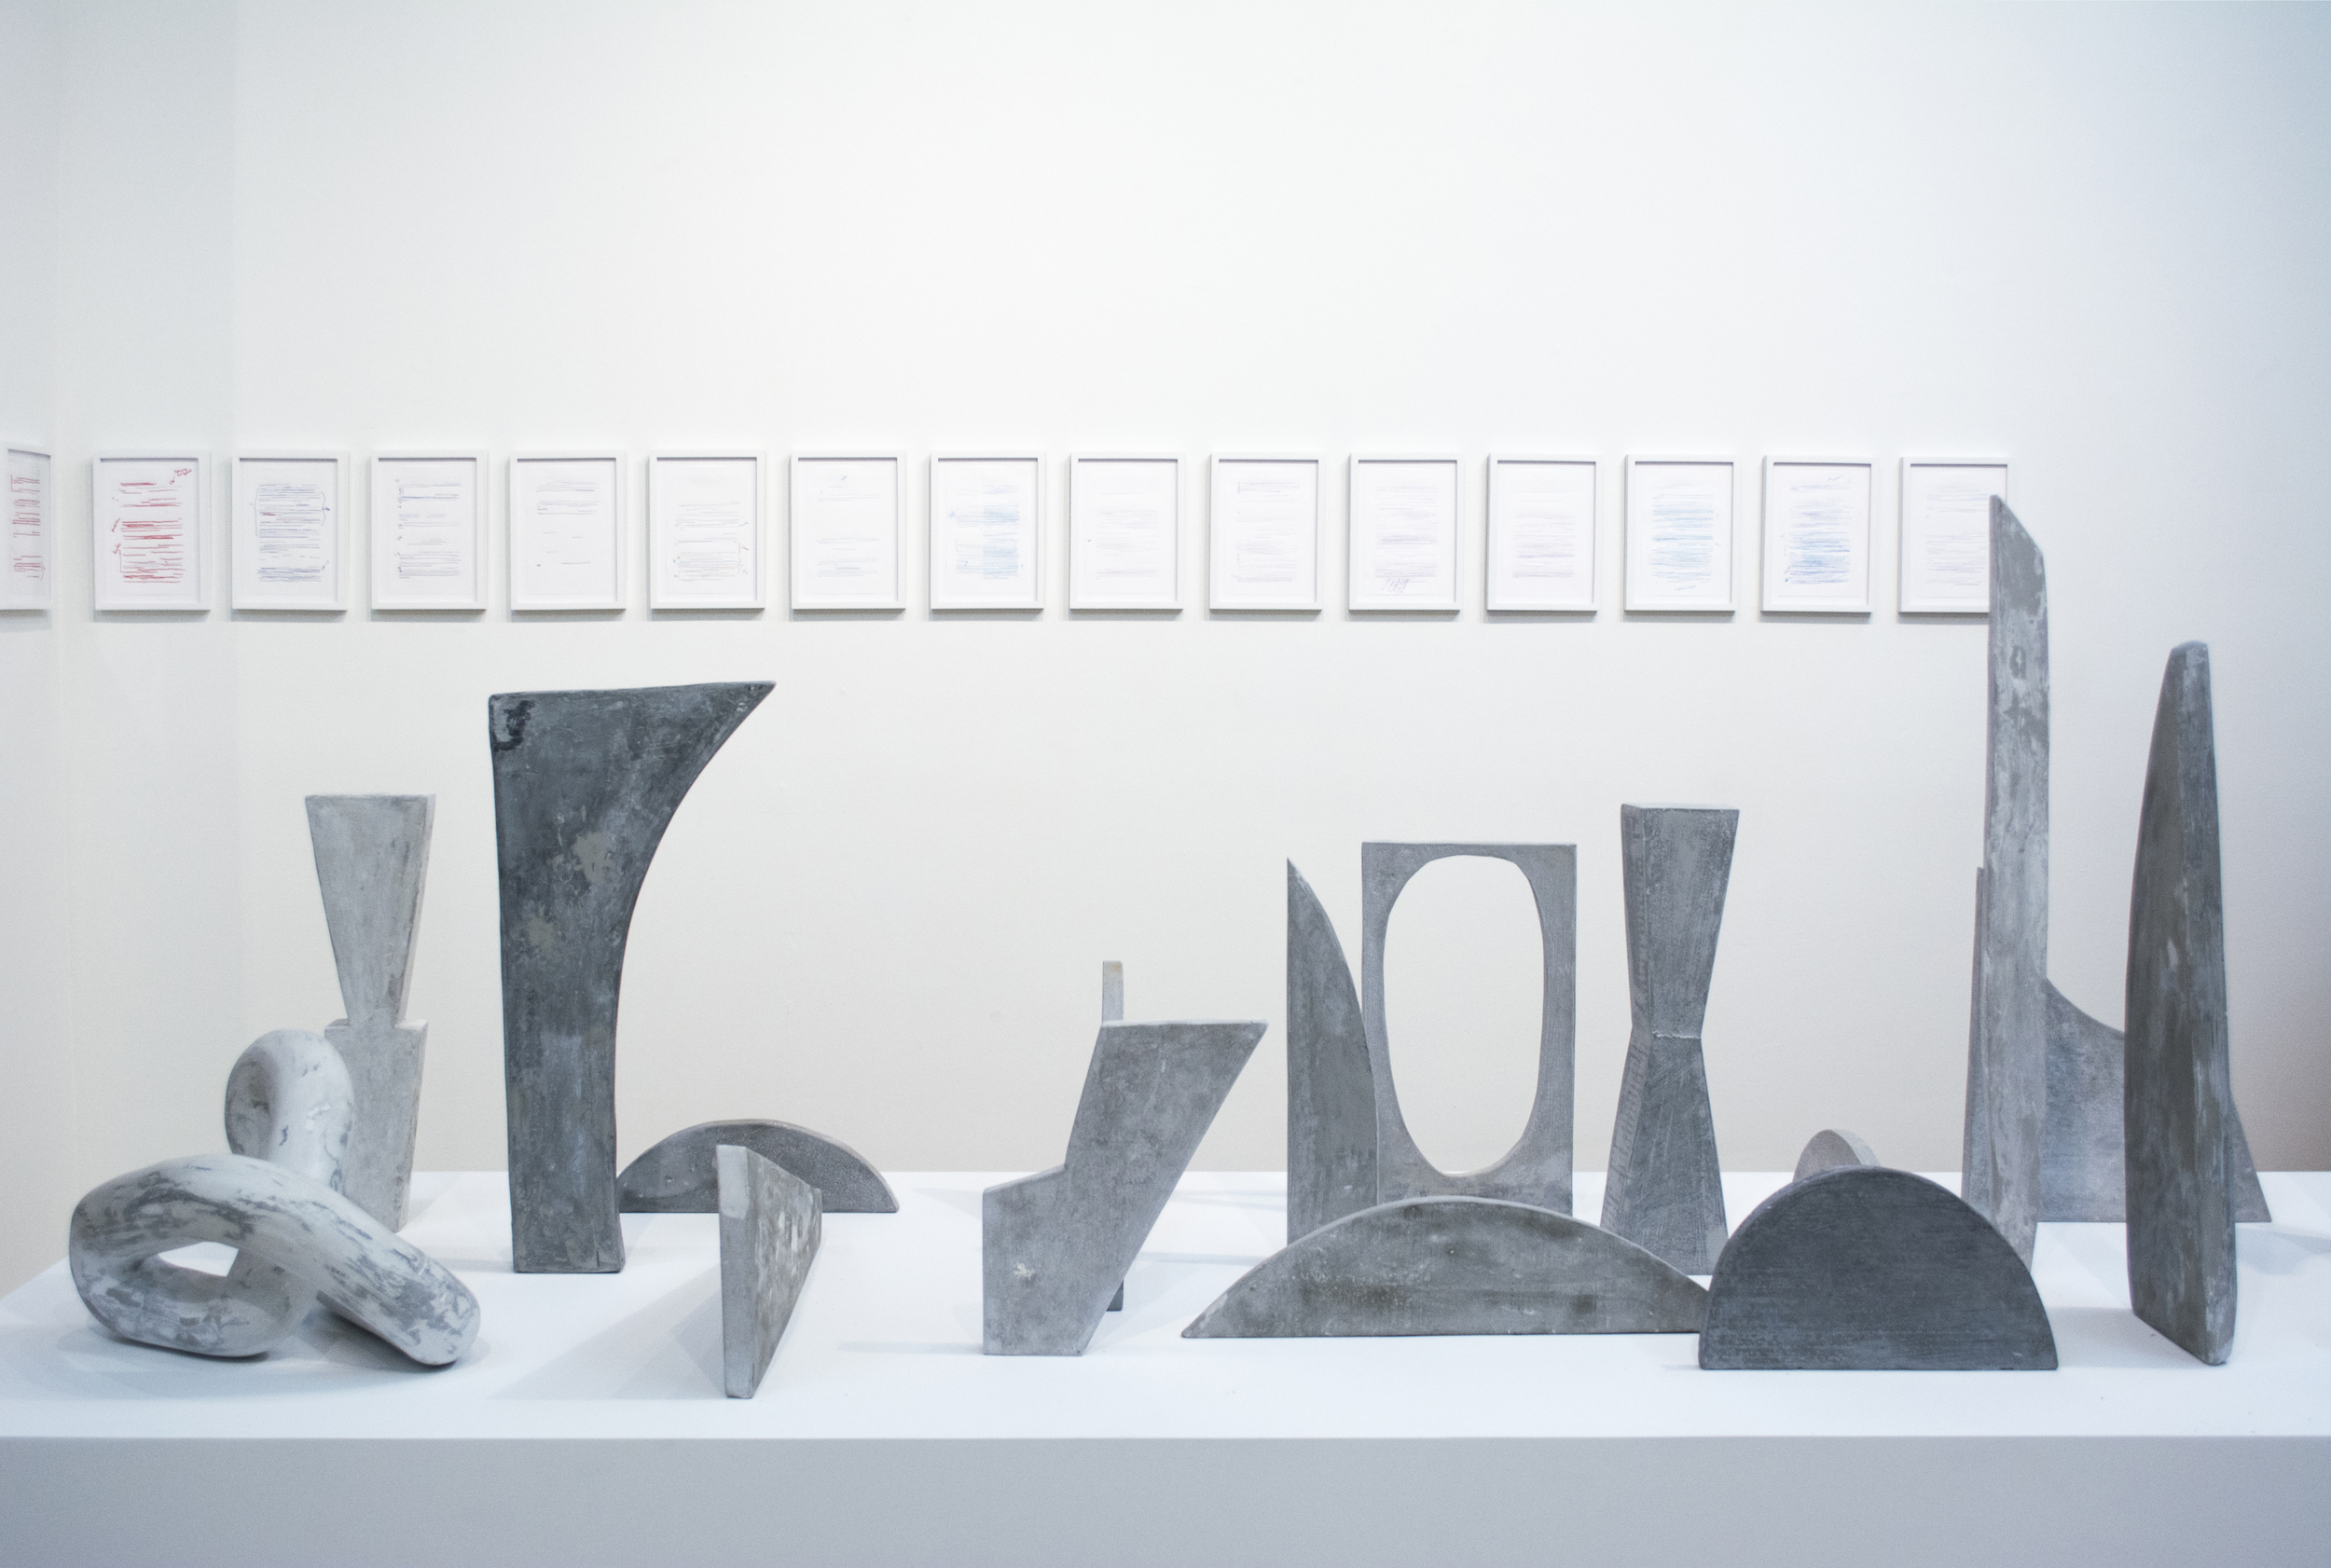 """Background:  Becca Albee   RADICAL FEMINIST THERAPY (WORKING IN THE CONTEXT OF VIOLENCE, B.B. 1992)  series, 2016  Foreground:  Carolyn Salas   Line studies No.1-17, Movement studies No.5 , 2016  Cast hydrocal and graphite.Dimensions variable, on platform 120 x 42 x 24"""""""